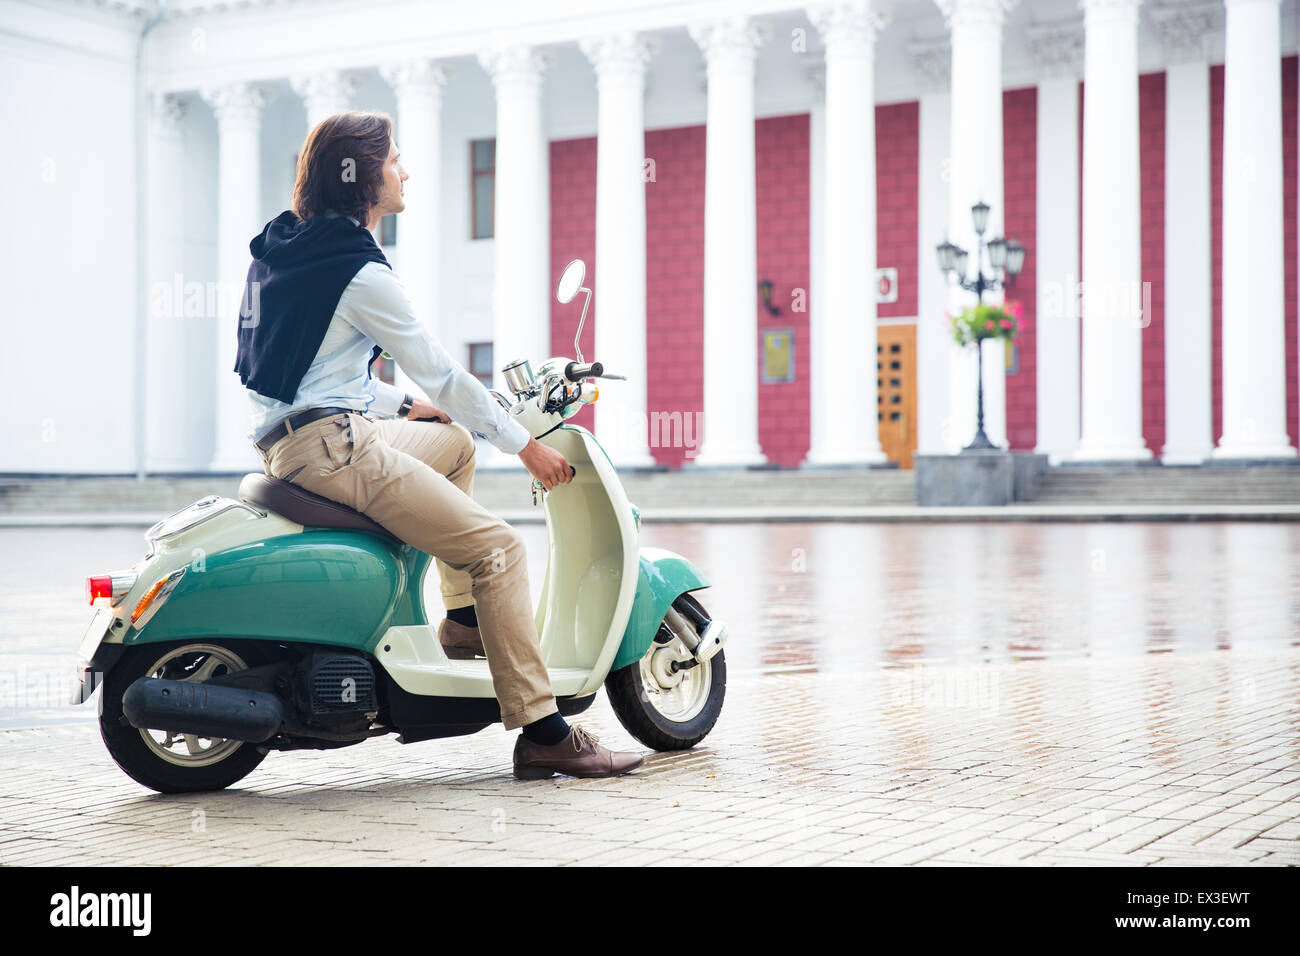 Man starts his scooter ready to drive the city - Stock Image